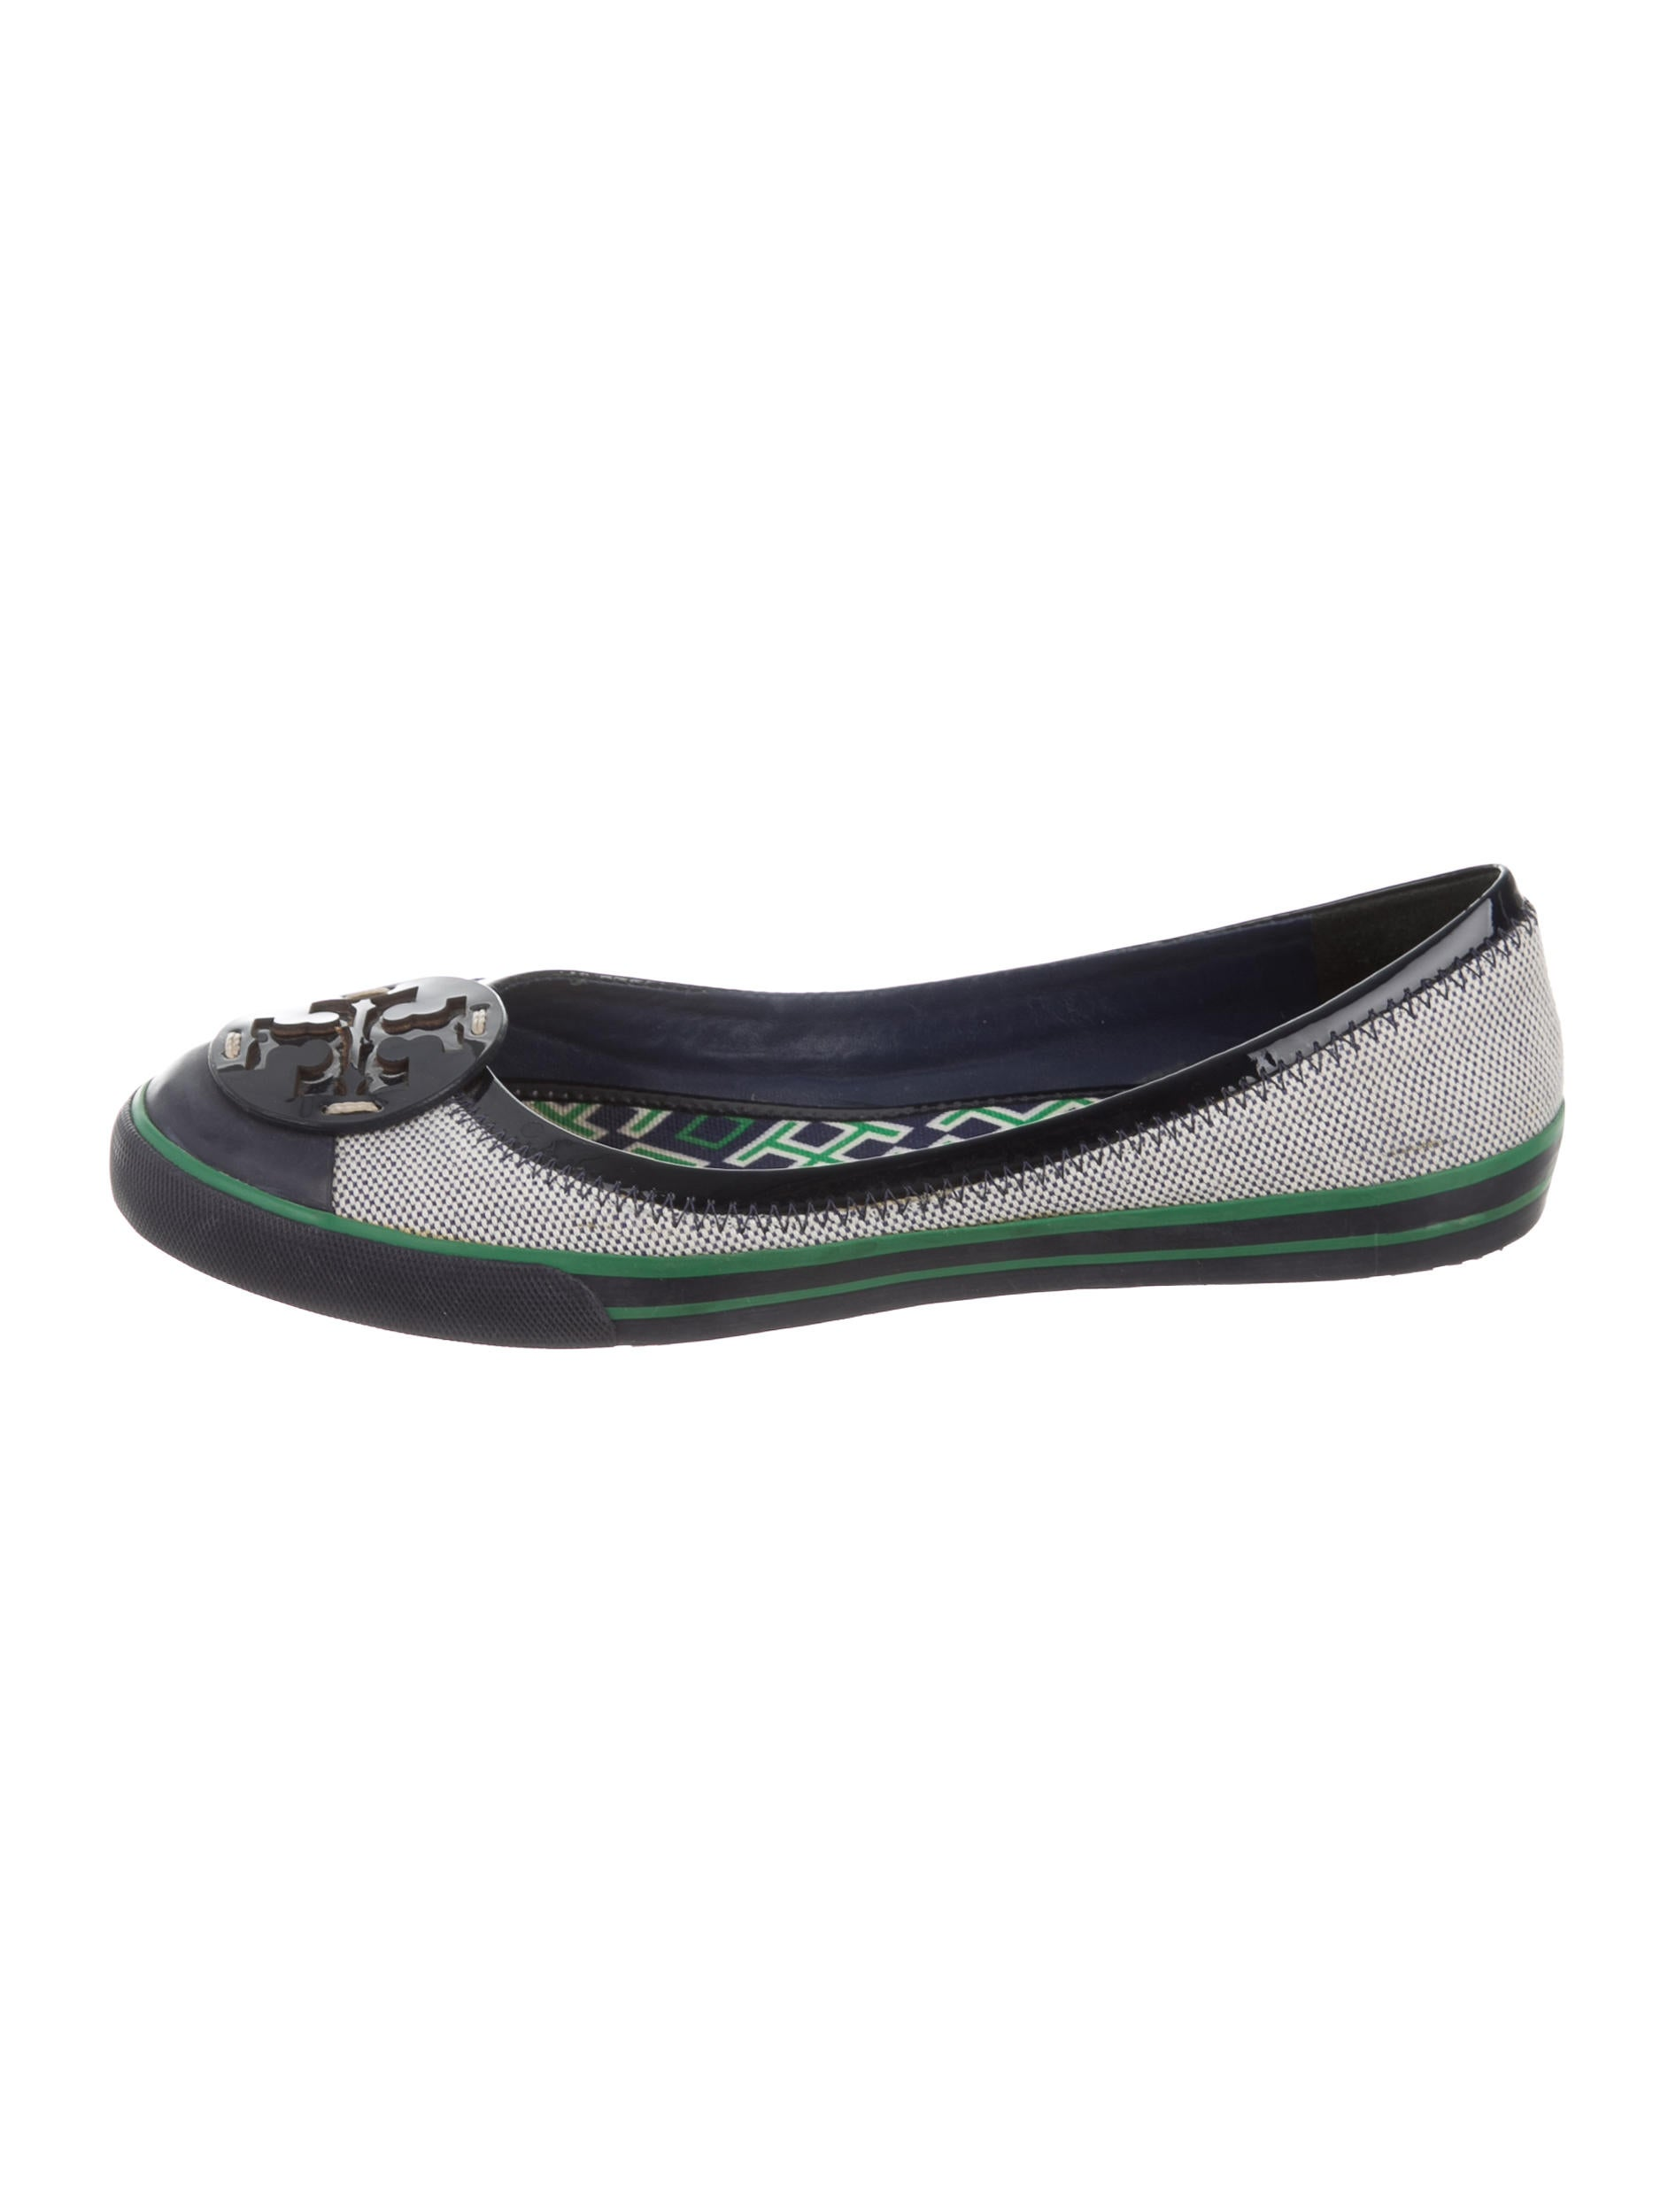 burch canvas logo flats shoes wto89305 the realreal